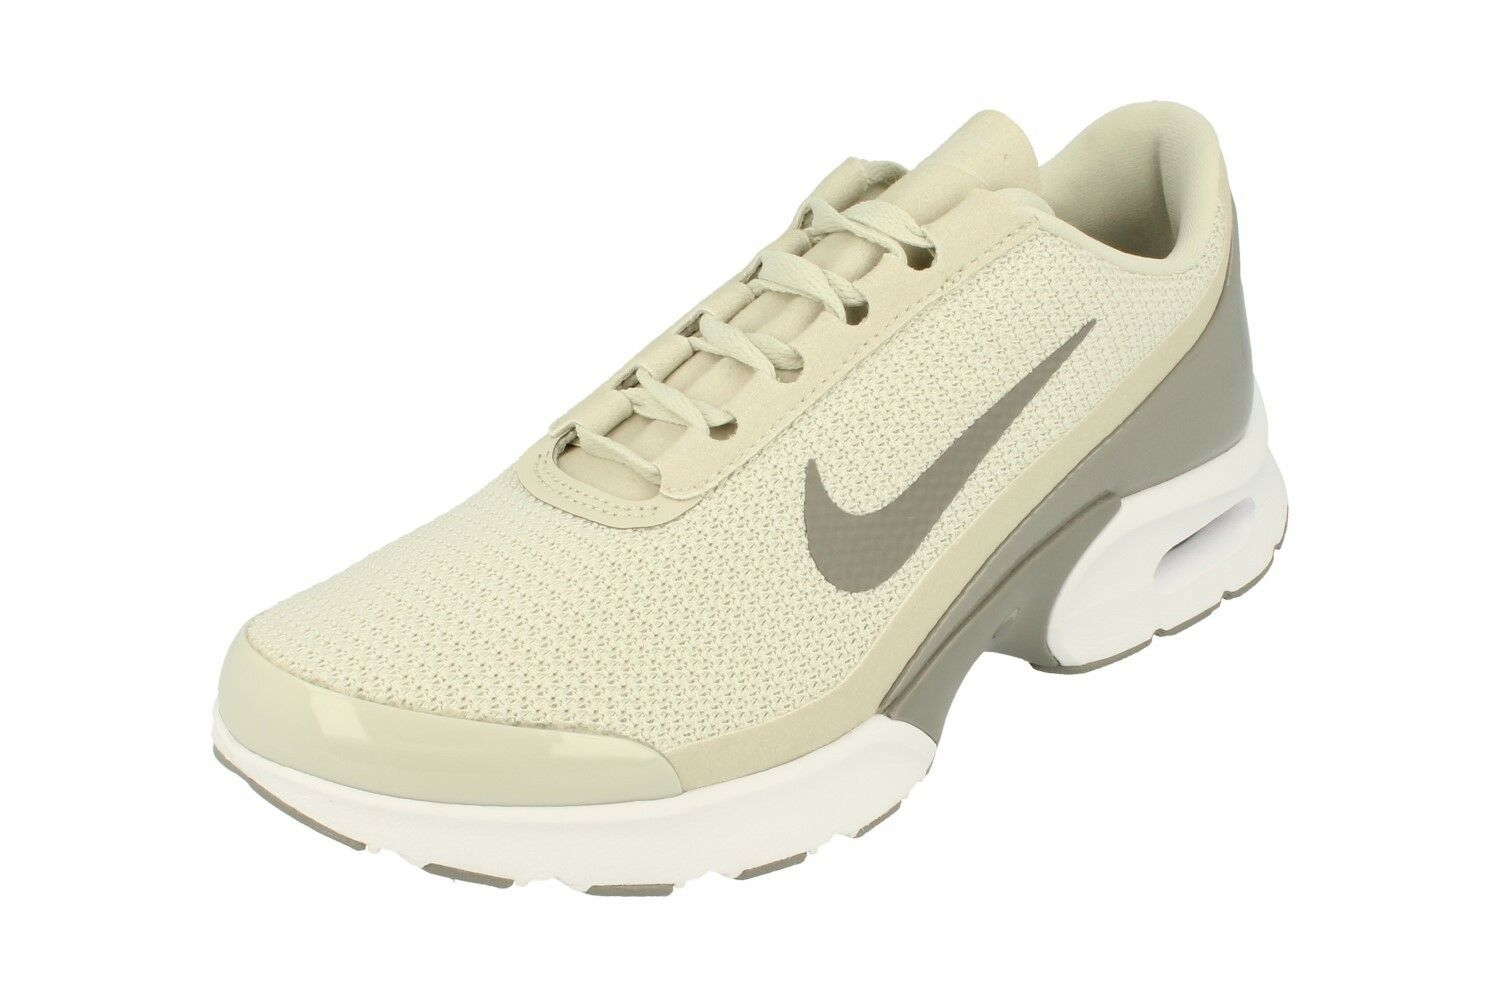 Nike Womens Air Max Jewel Running Trainers 896194 Sneakers Shoes 002 Comfortable and good-looking